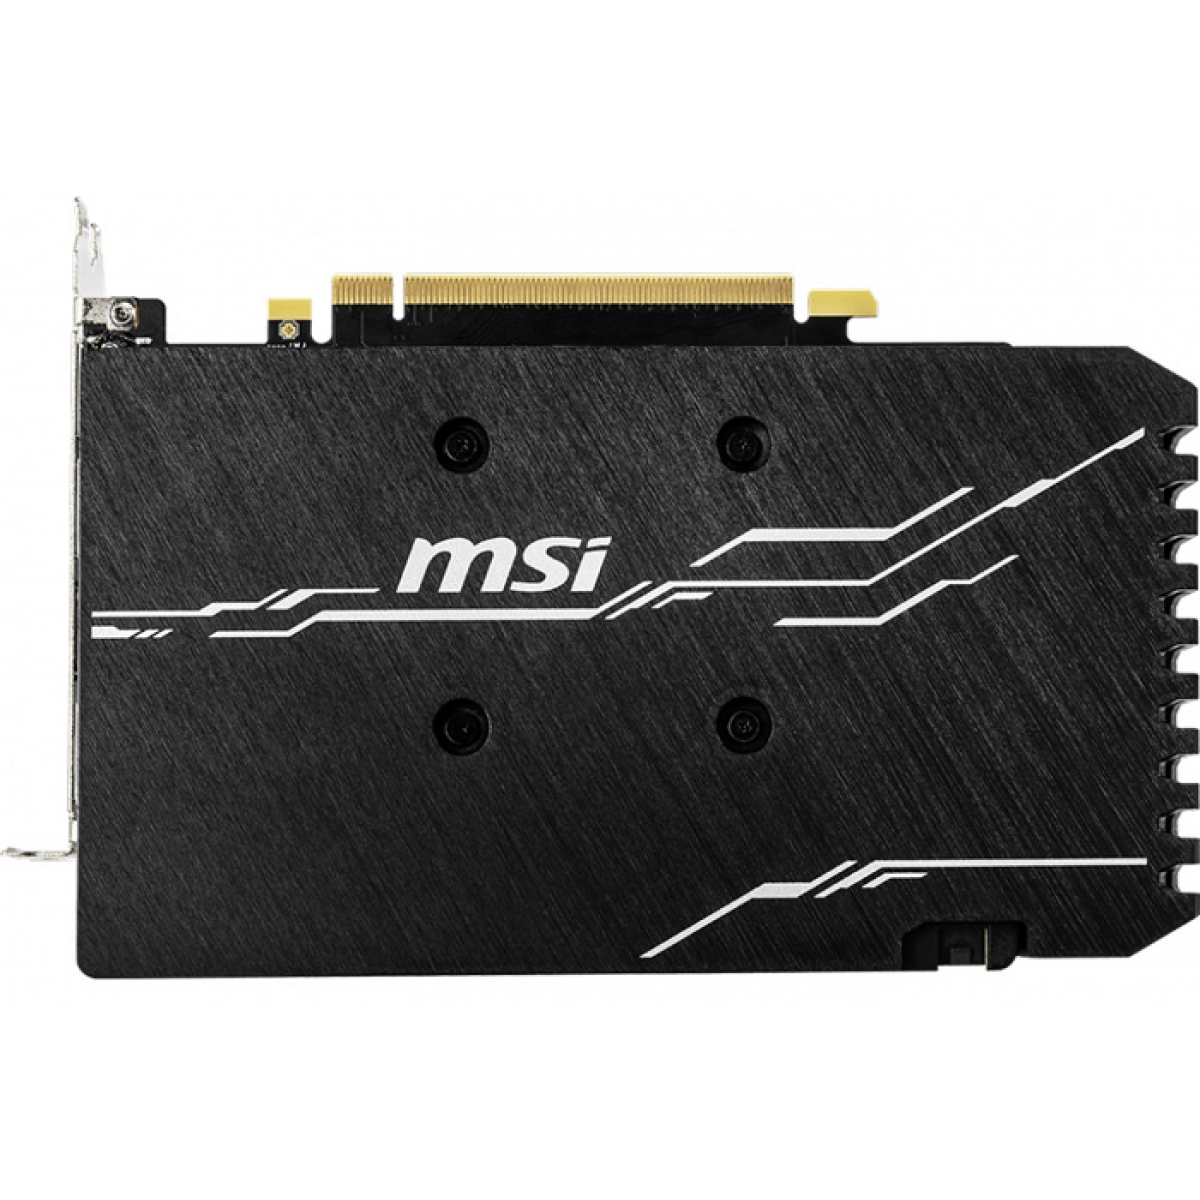 Placa de Vídeo Msi GeForce GTX 1660 Ti Ventus XS Dual OC, 6GB GDDR6, 192Bit